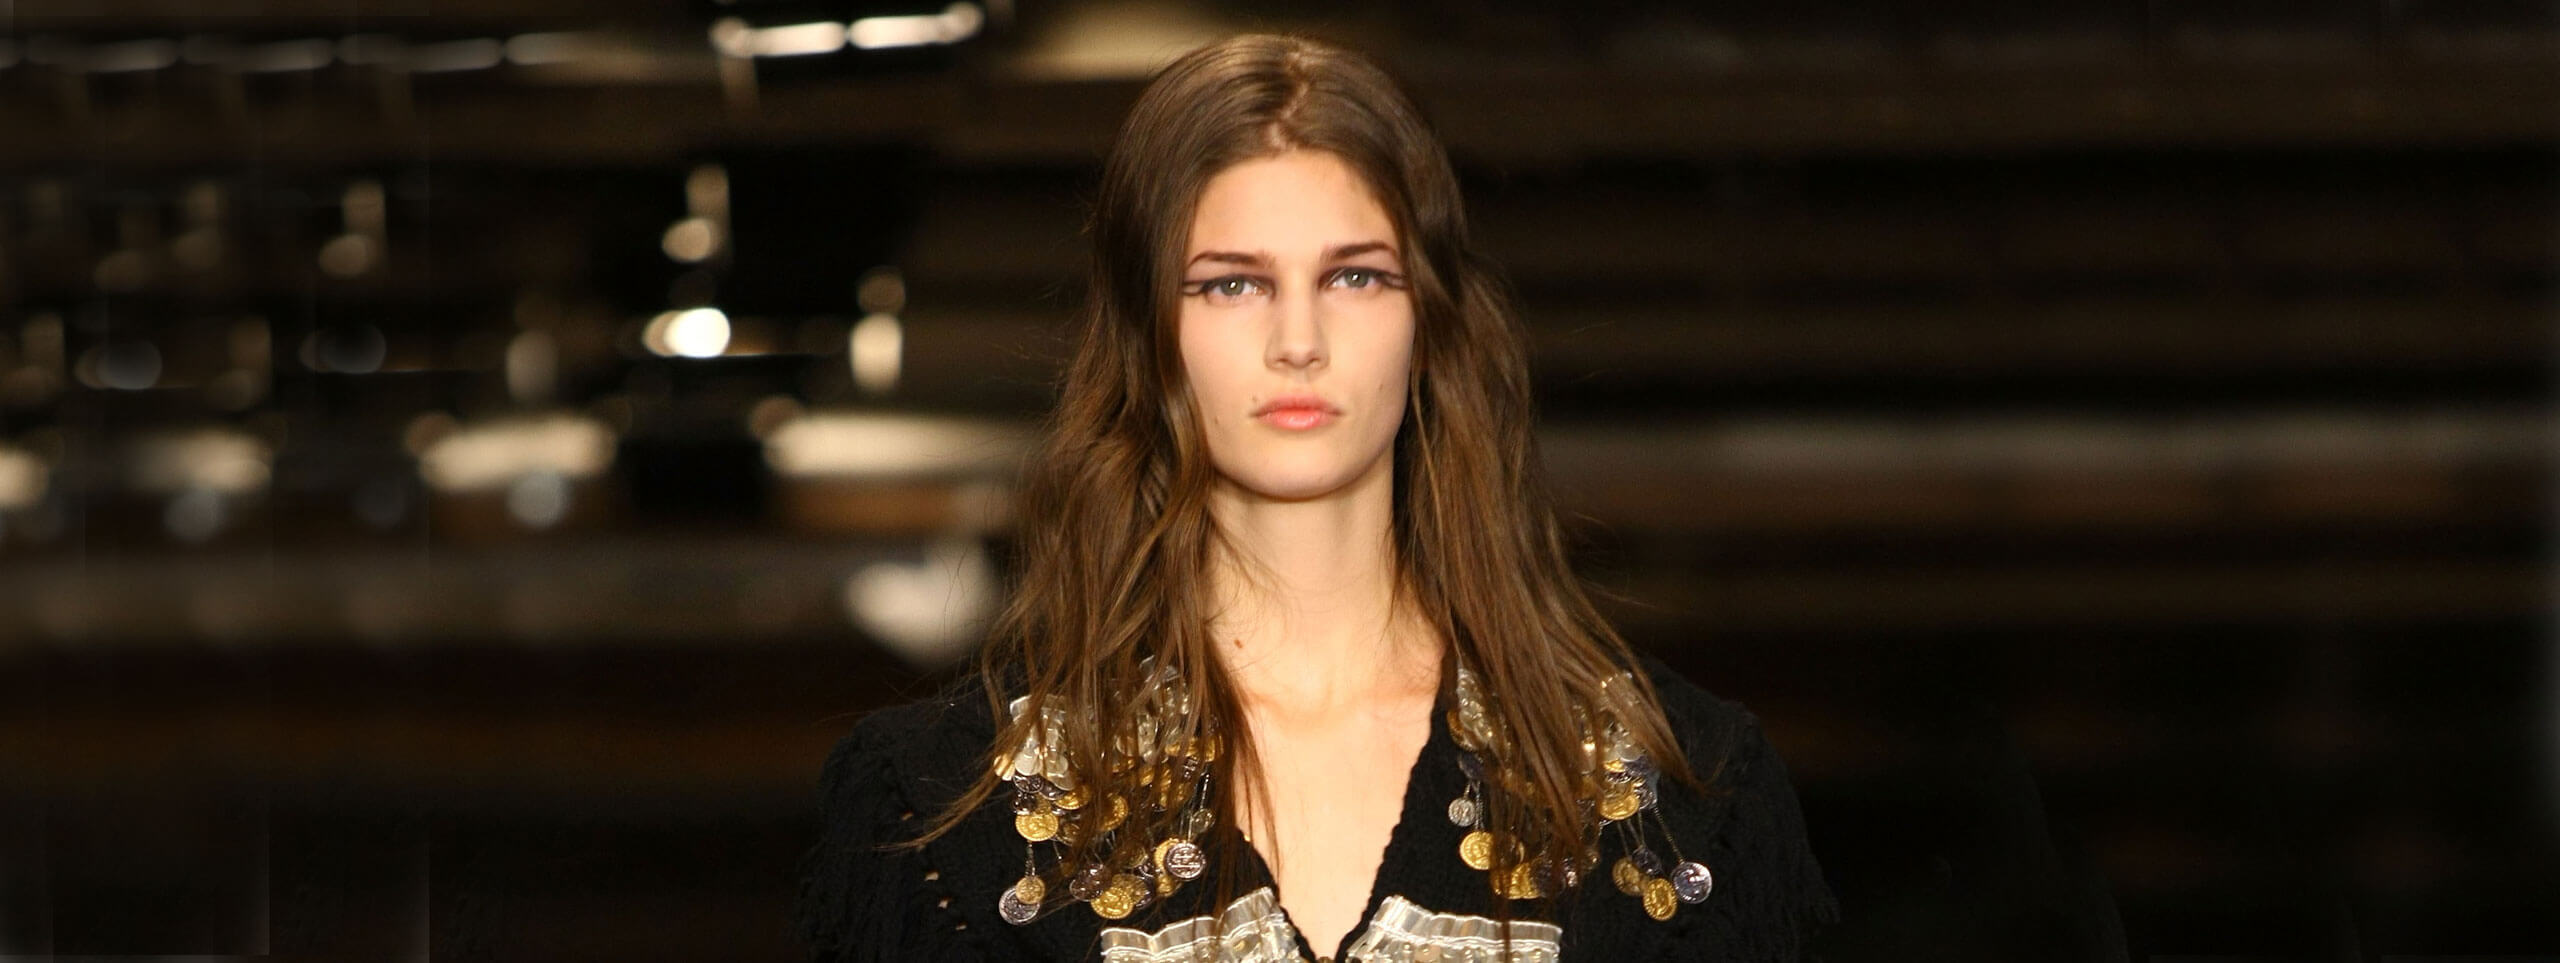 hairstyles-new-york-fashionweek